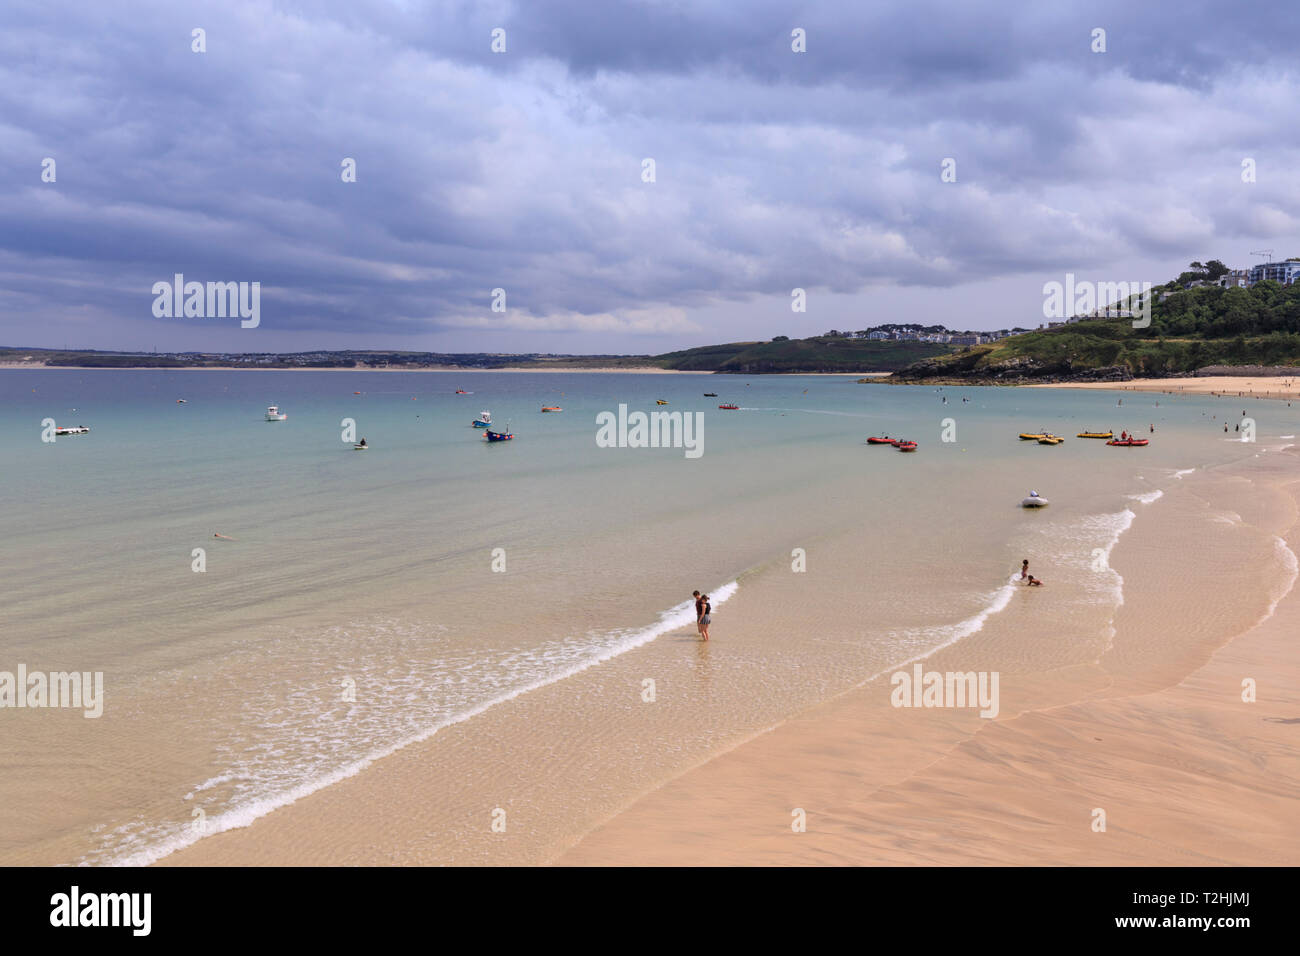 St Ives beaches, popular seaside resort in hot weather, Summer, Cornwall, England, United Kingdom, Europe - Stock Image